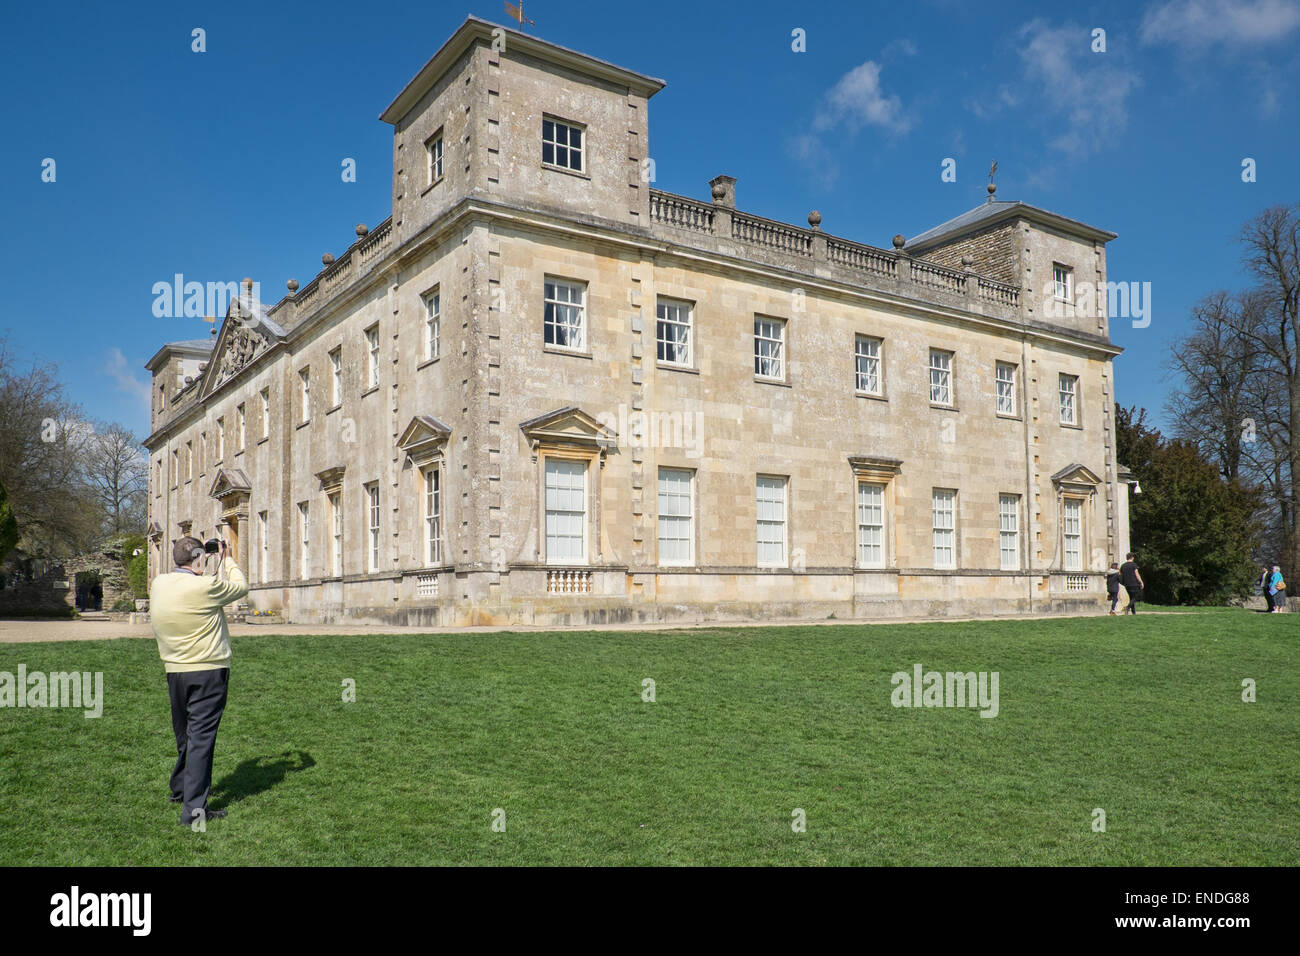 A tourist taking photos of the preserved historic Palladian property, Lydiard House in Swindon, Wiltshire on a sunny - Stock Image